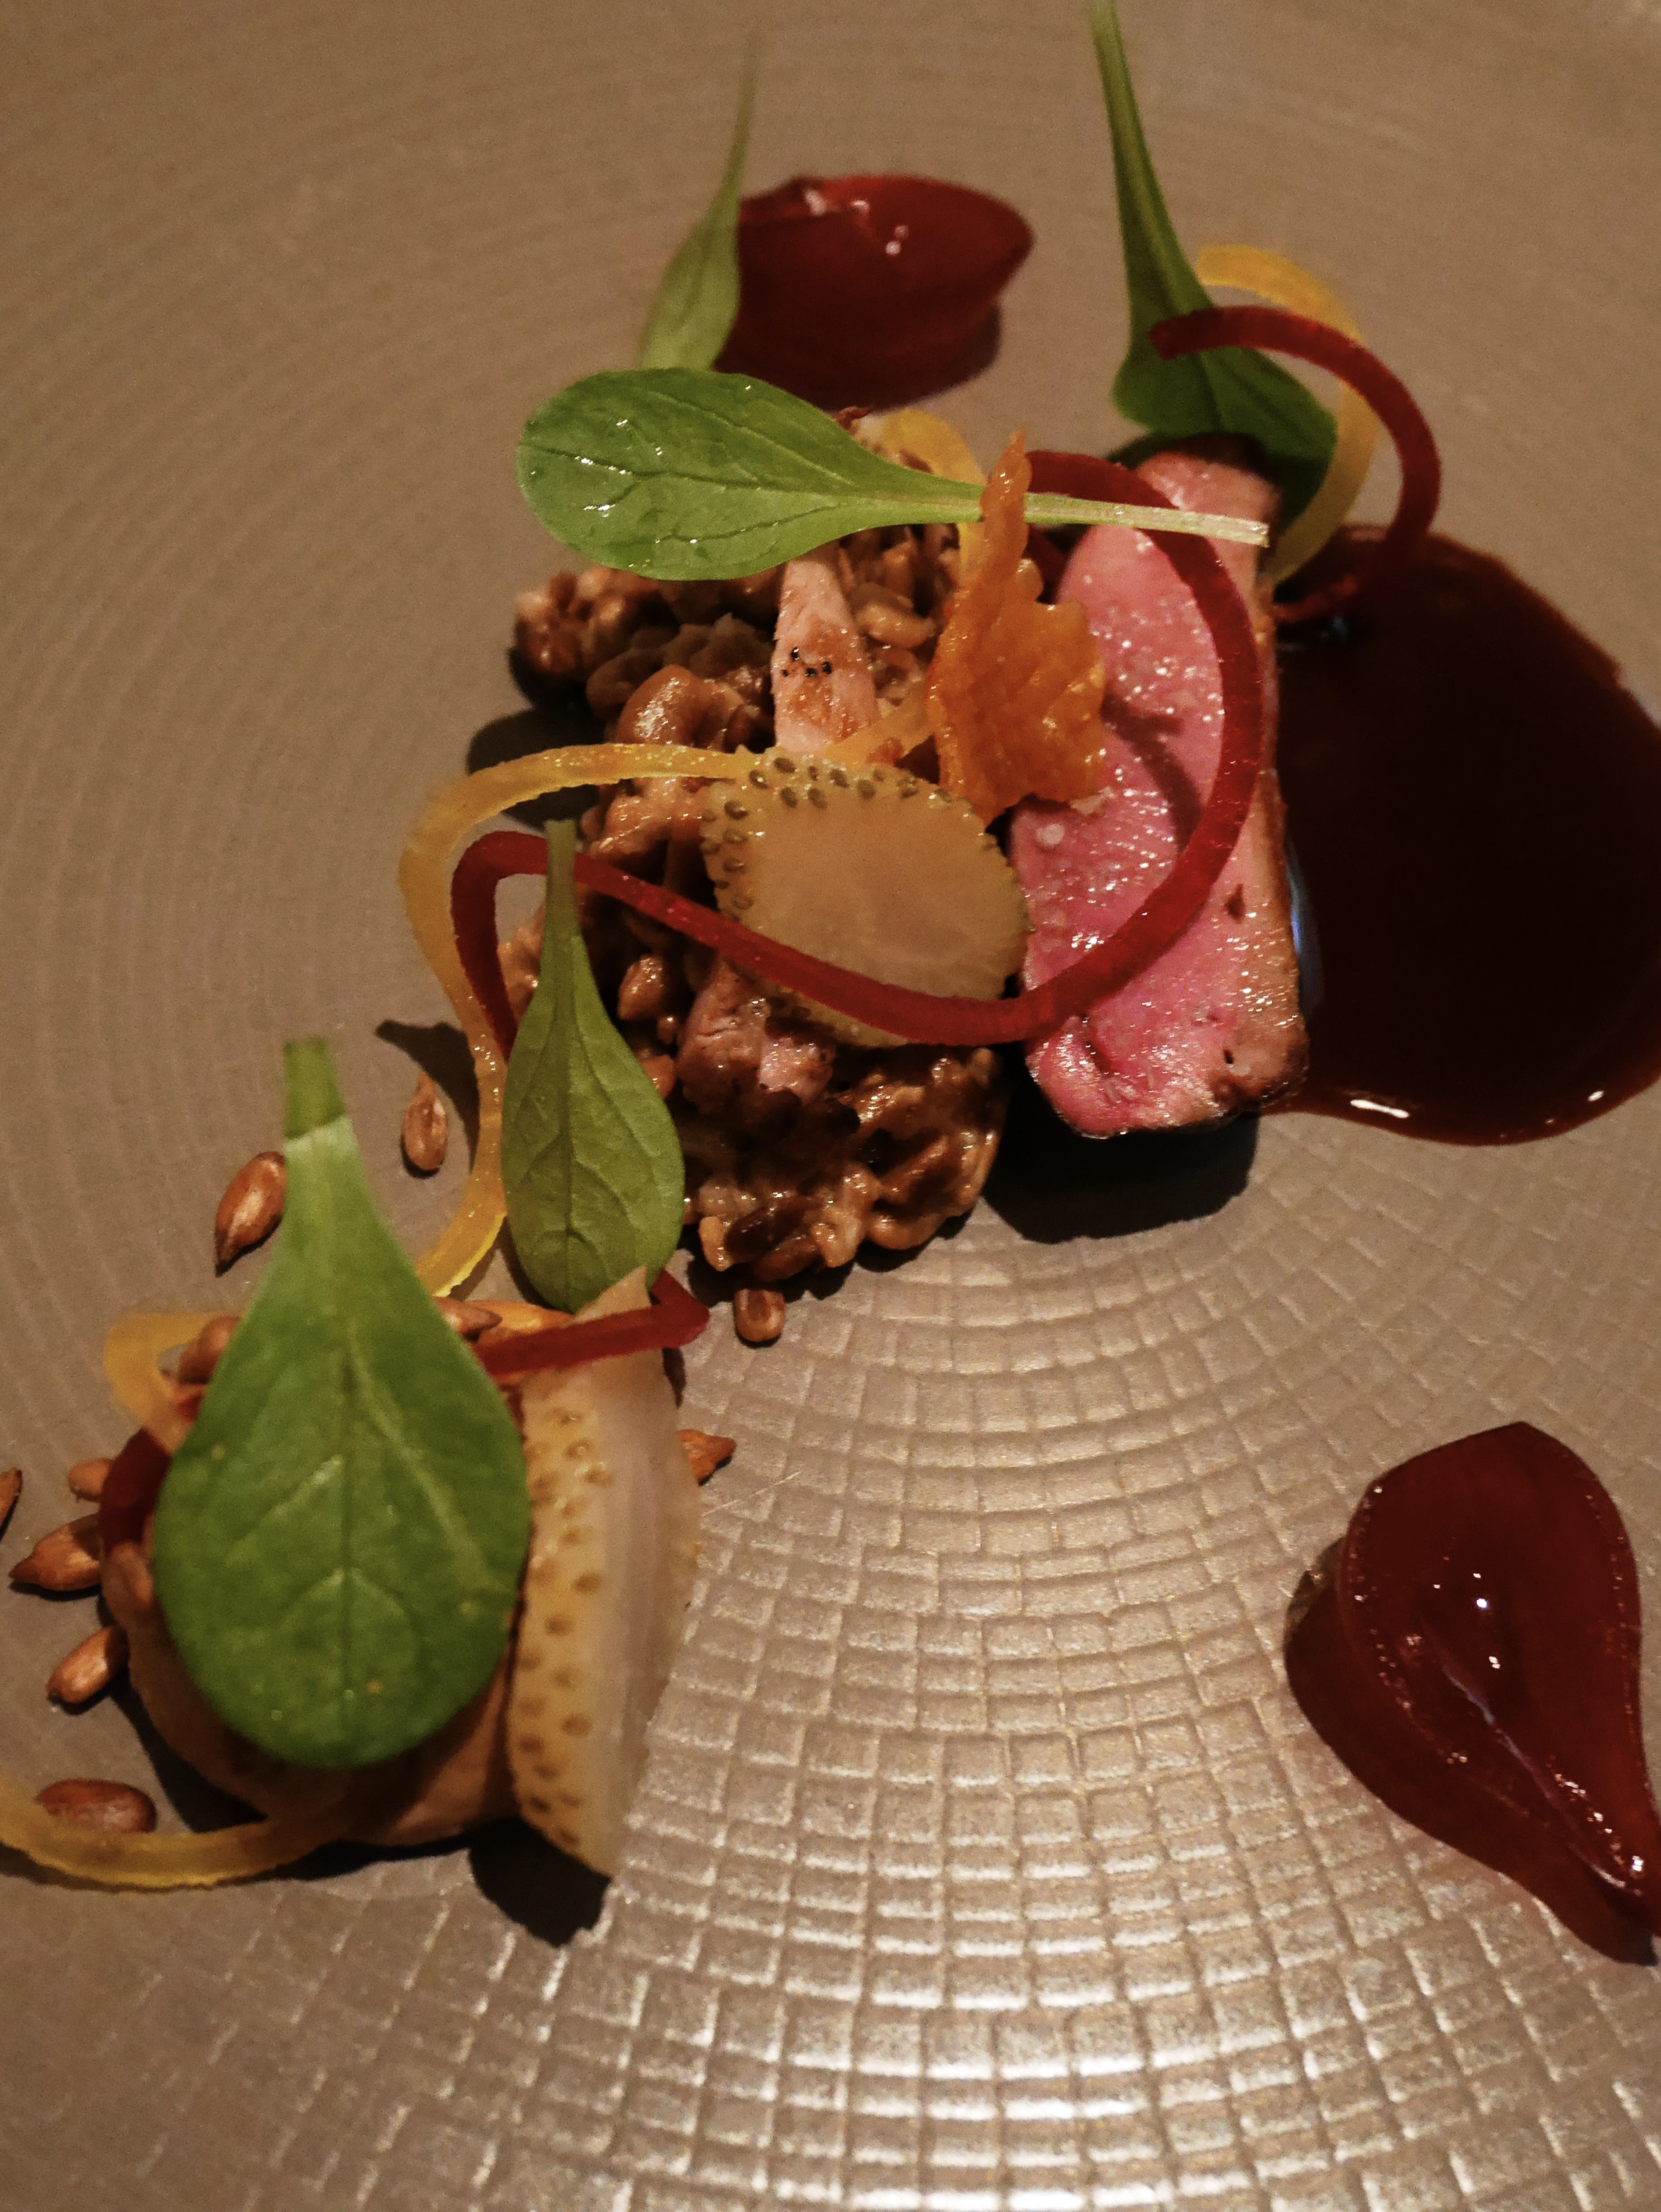 Squab, beet, green strawberries, sunflower seed, máche